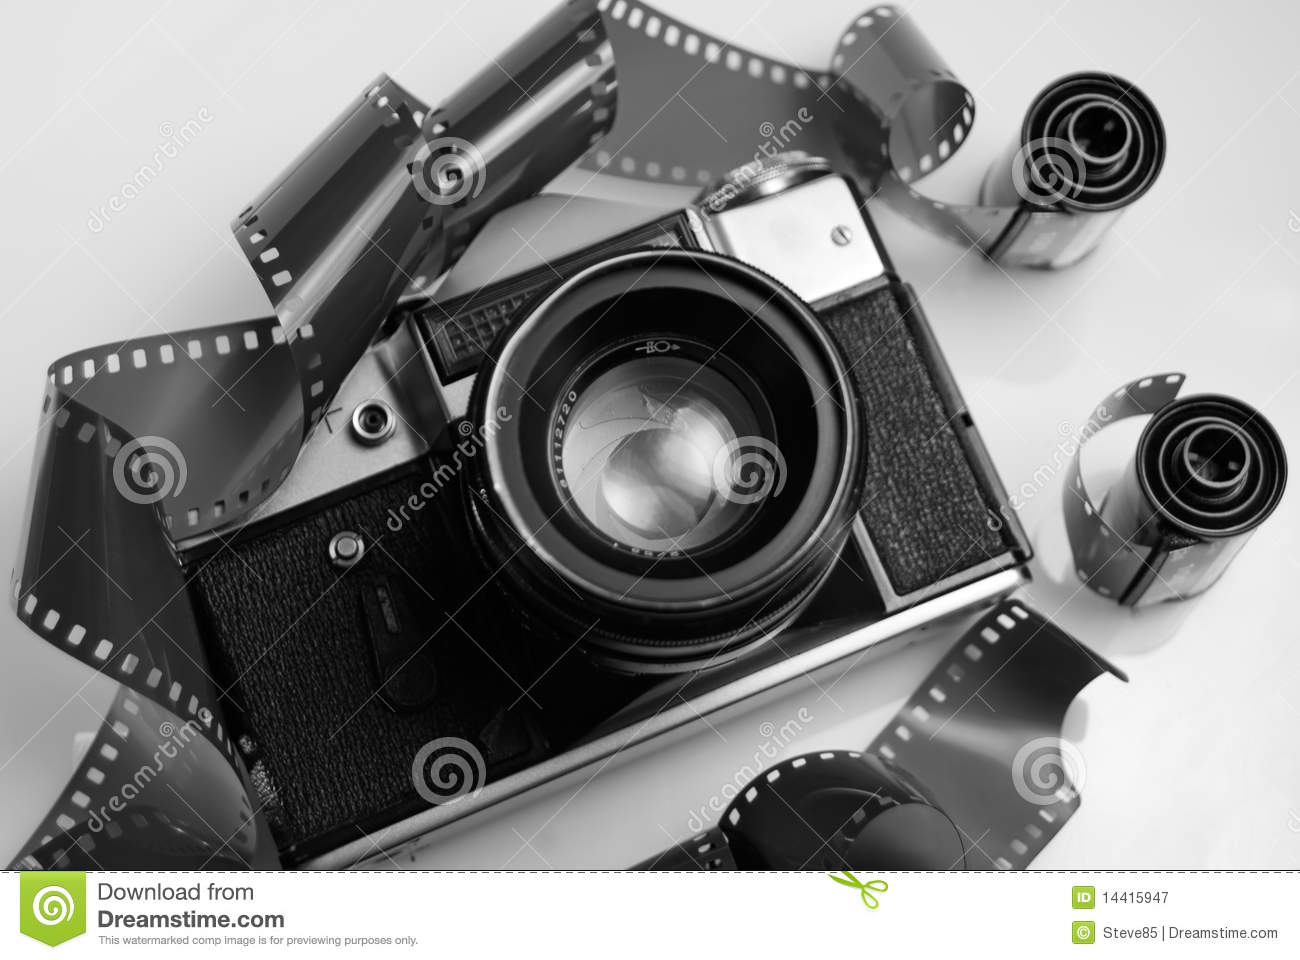 Black and white image of an old 35mm slr camera and film